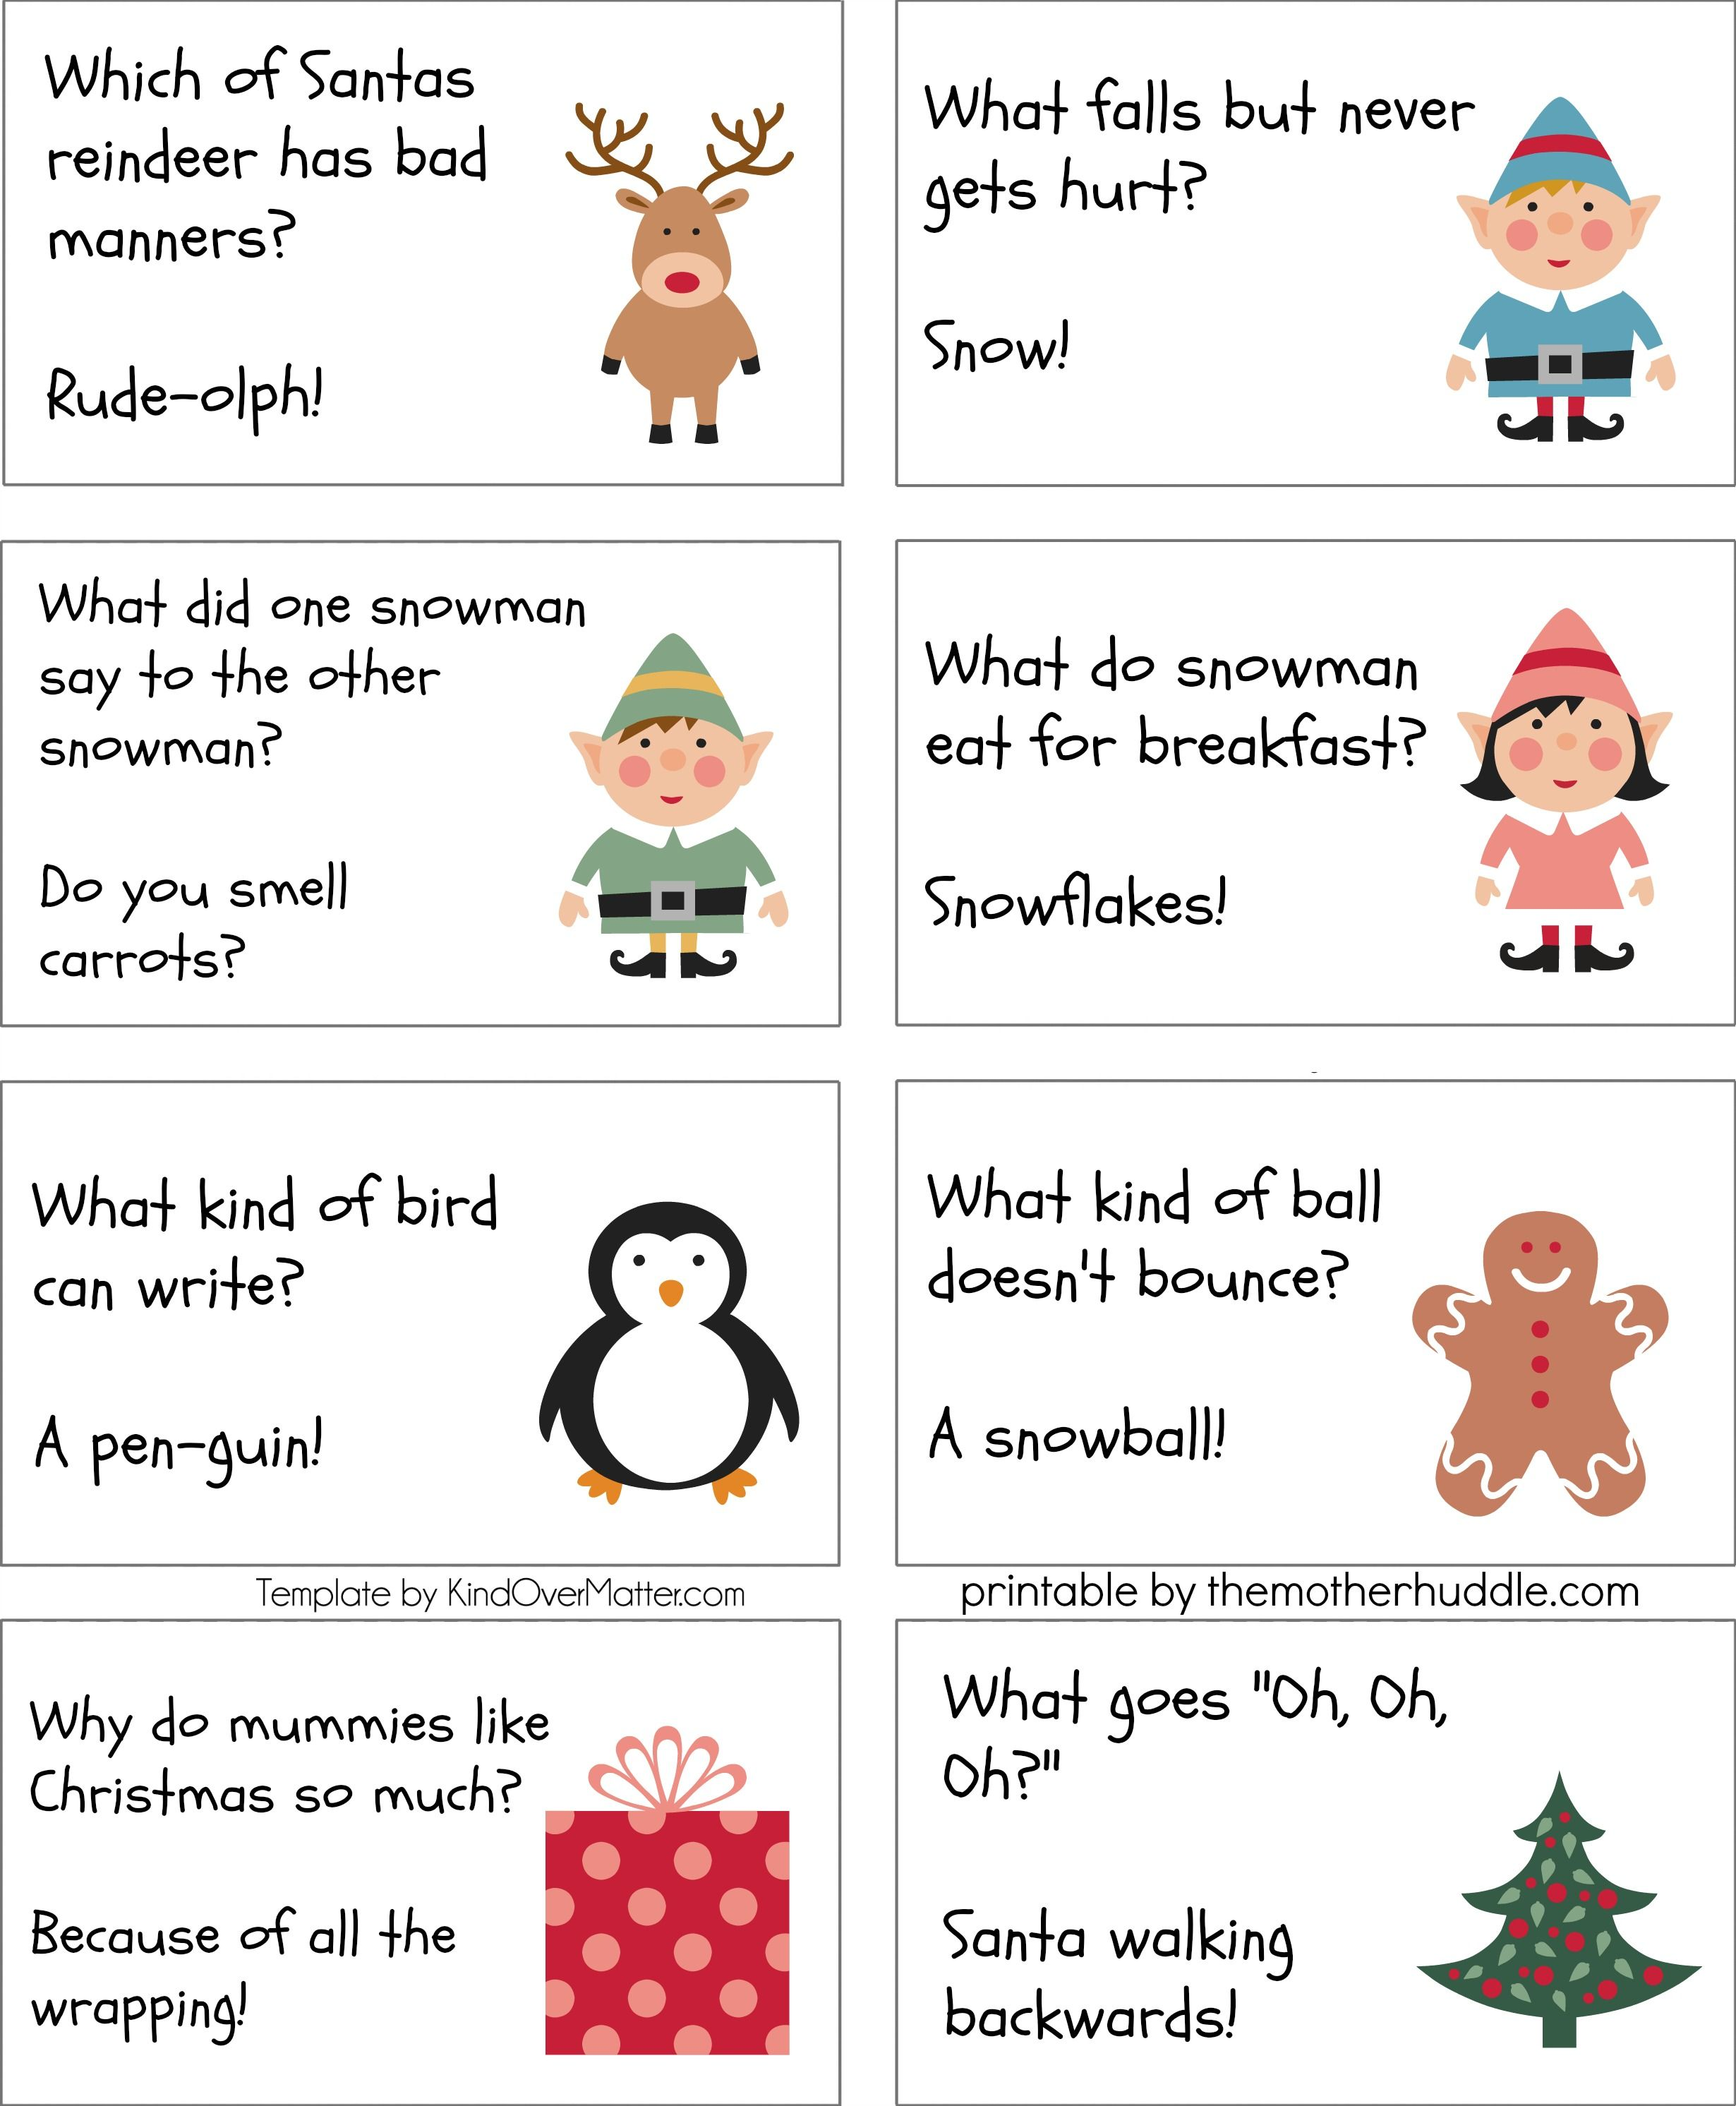 These Are Super To Print Out And Cut Up For Kids Xmas